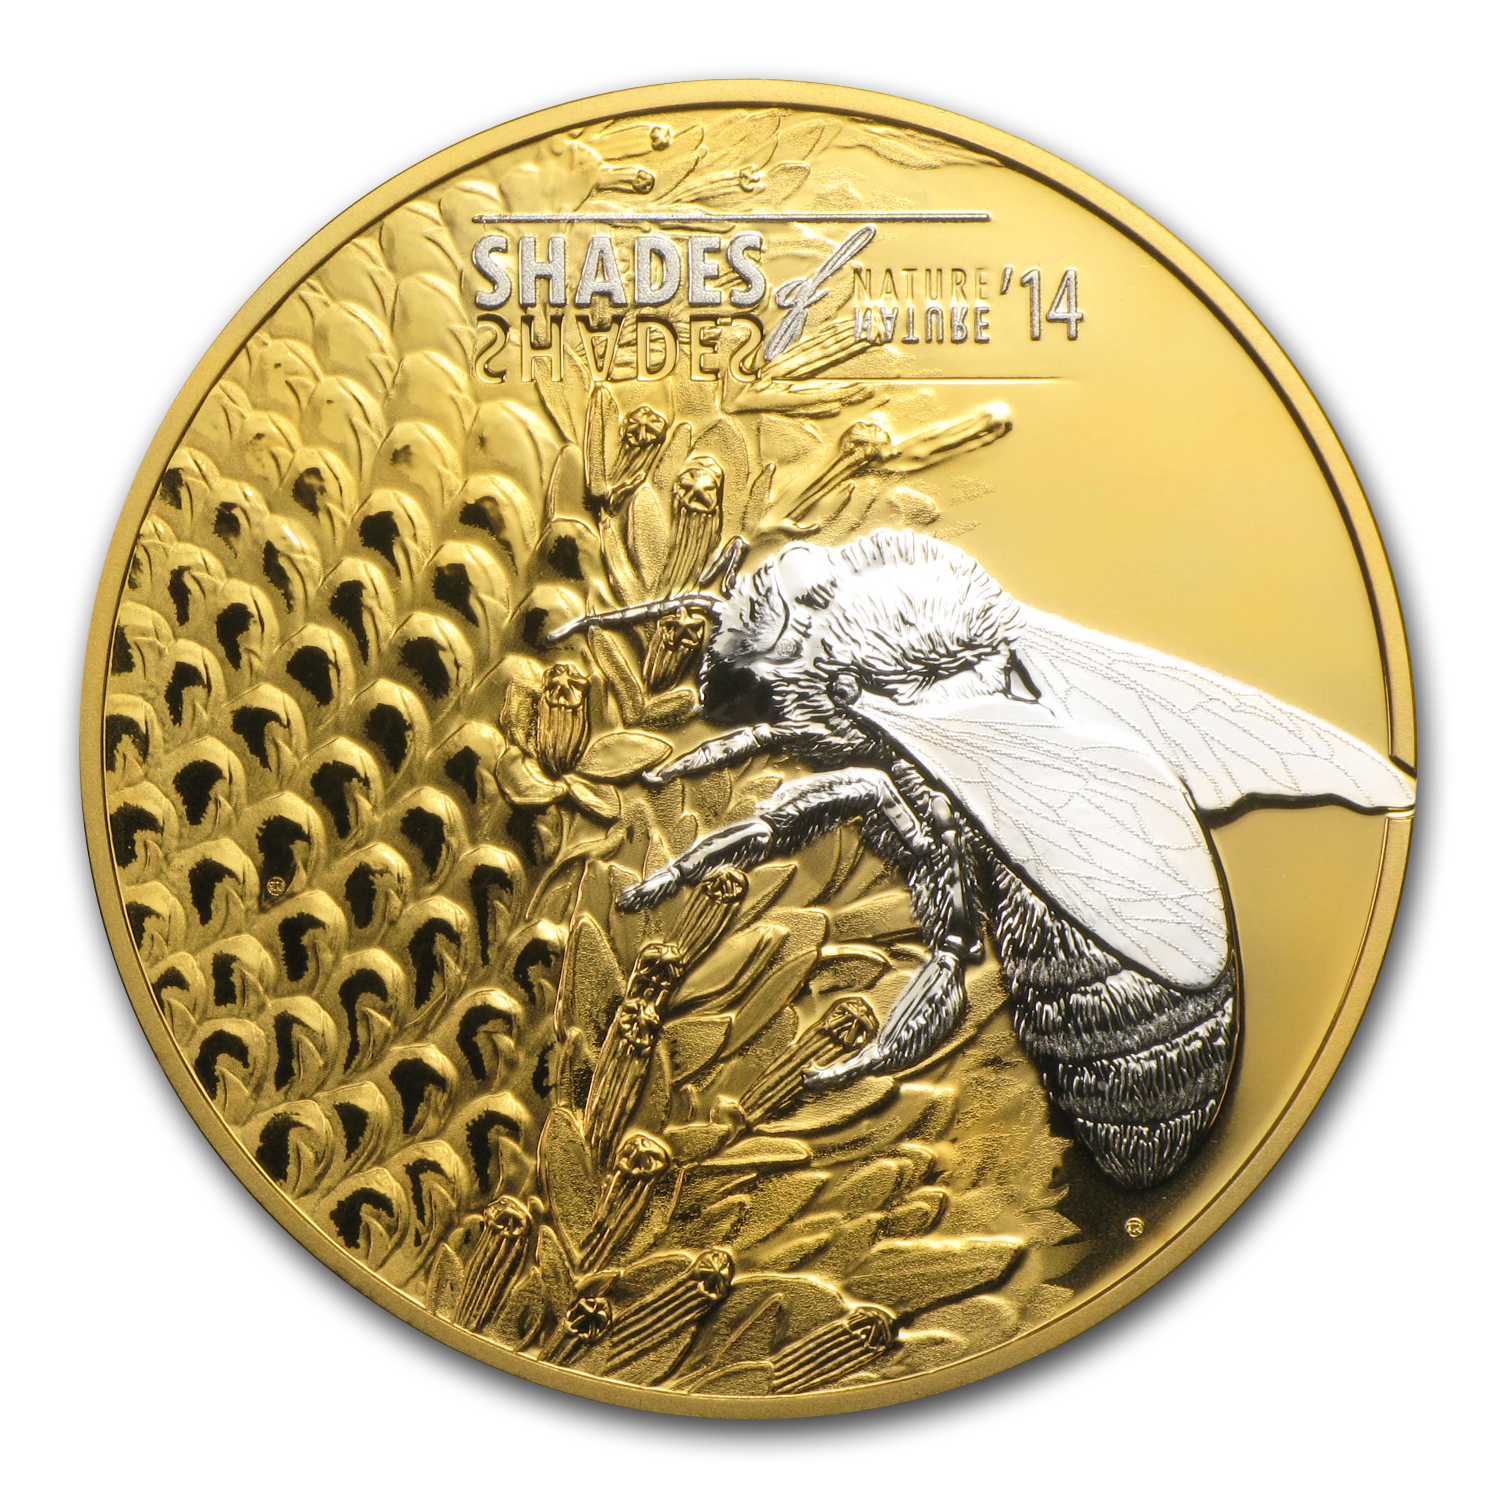 Cook Islands 2014 Proof Silver $5 Shades of Nature - Bee